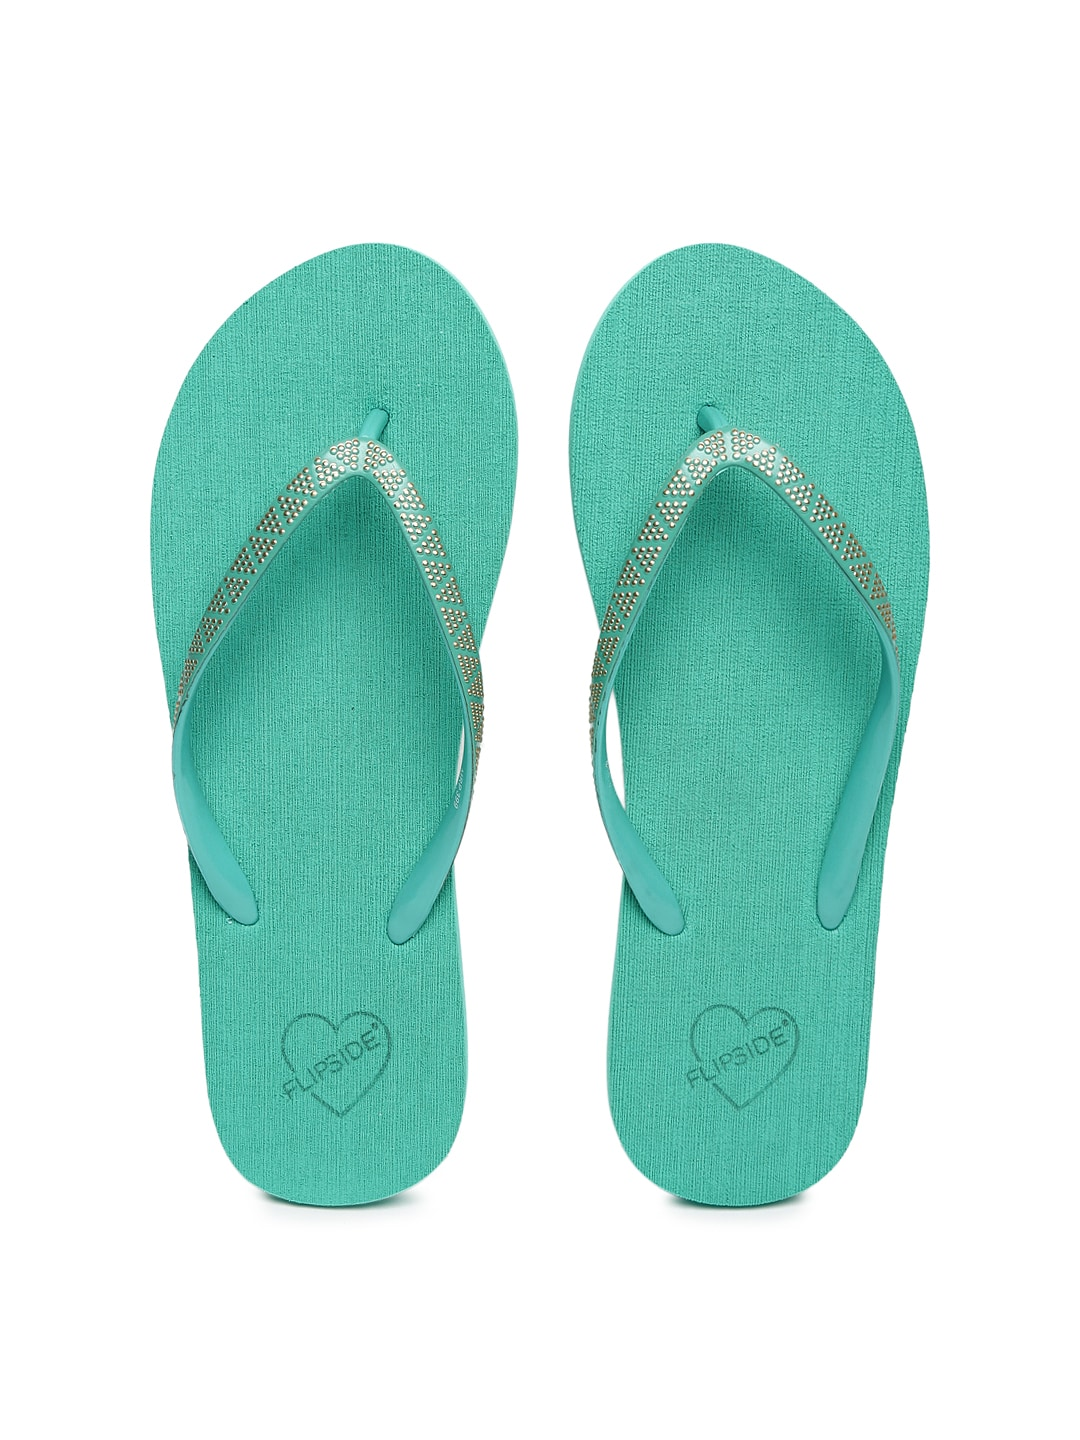 45d0e7826 Fizik Freak Feather Green Flip Flops for women - Get stylish shoes ...